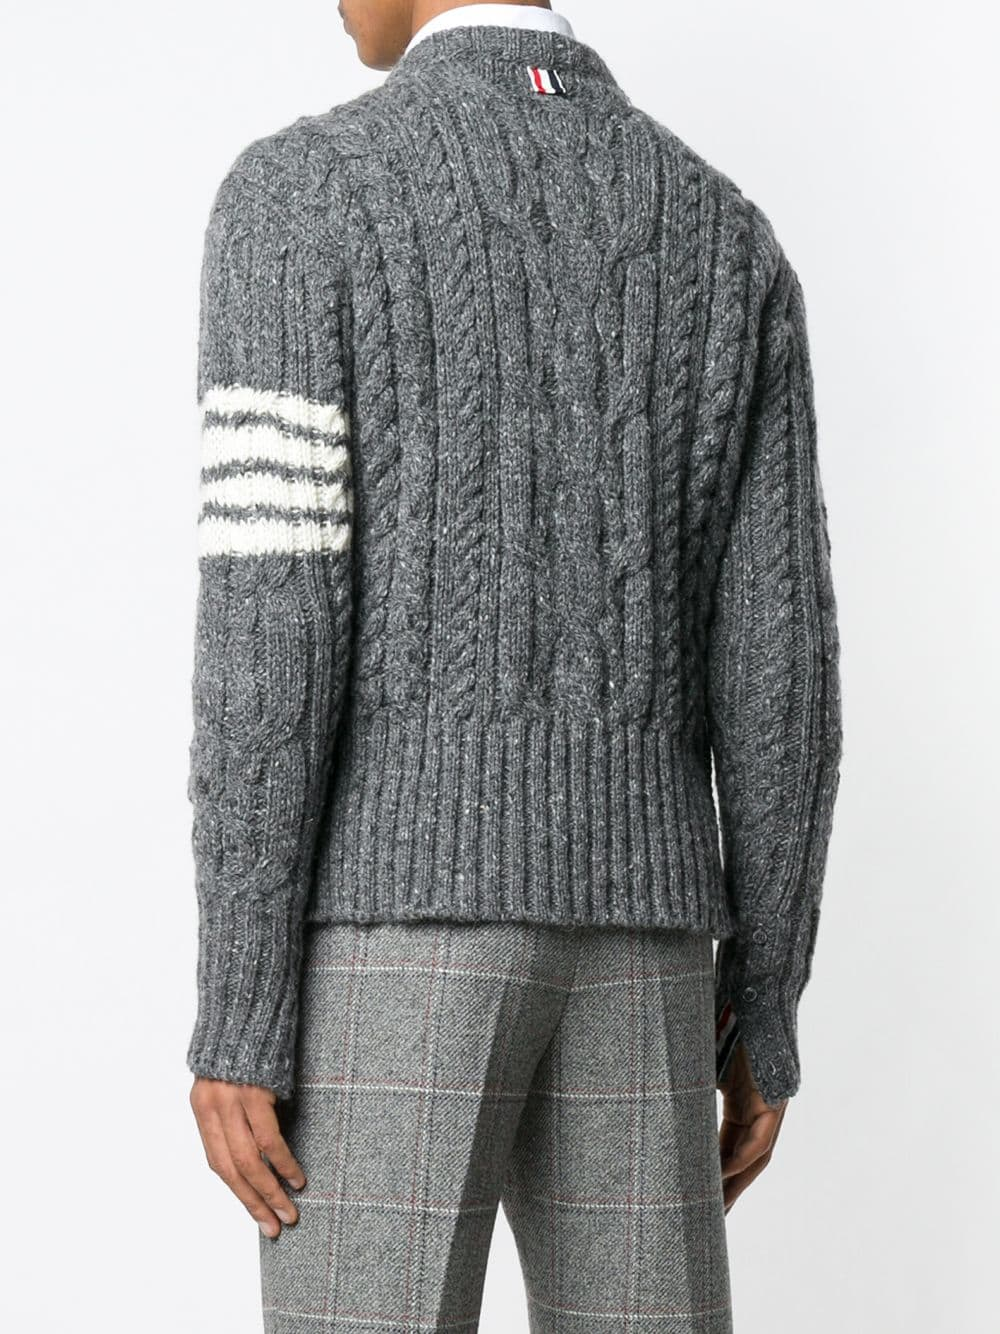 THOM BROWNE MEN ARAN CABLE CREW NECK PULLOVER IN DONEGAL WITH 4 BAR STRIPE